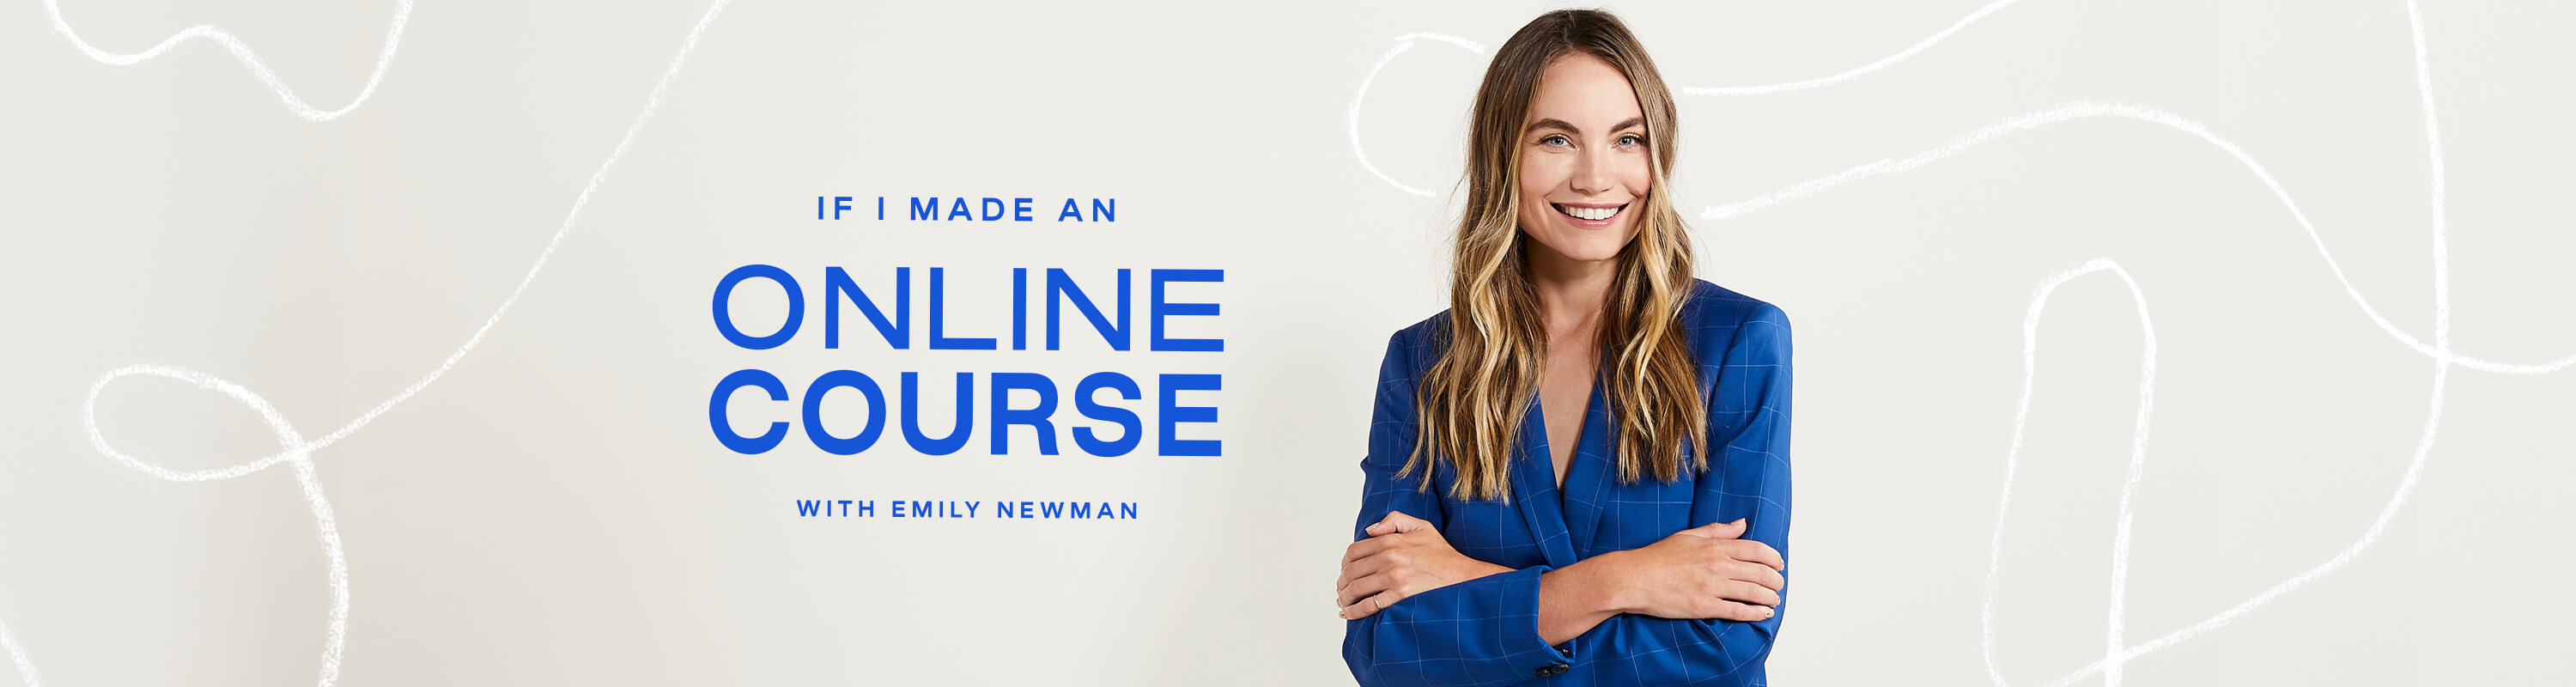 If I Made and online course with Emily Newman